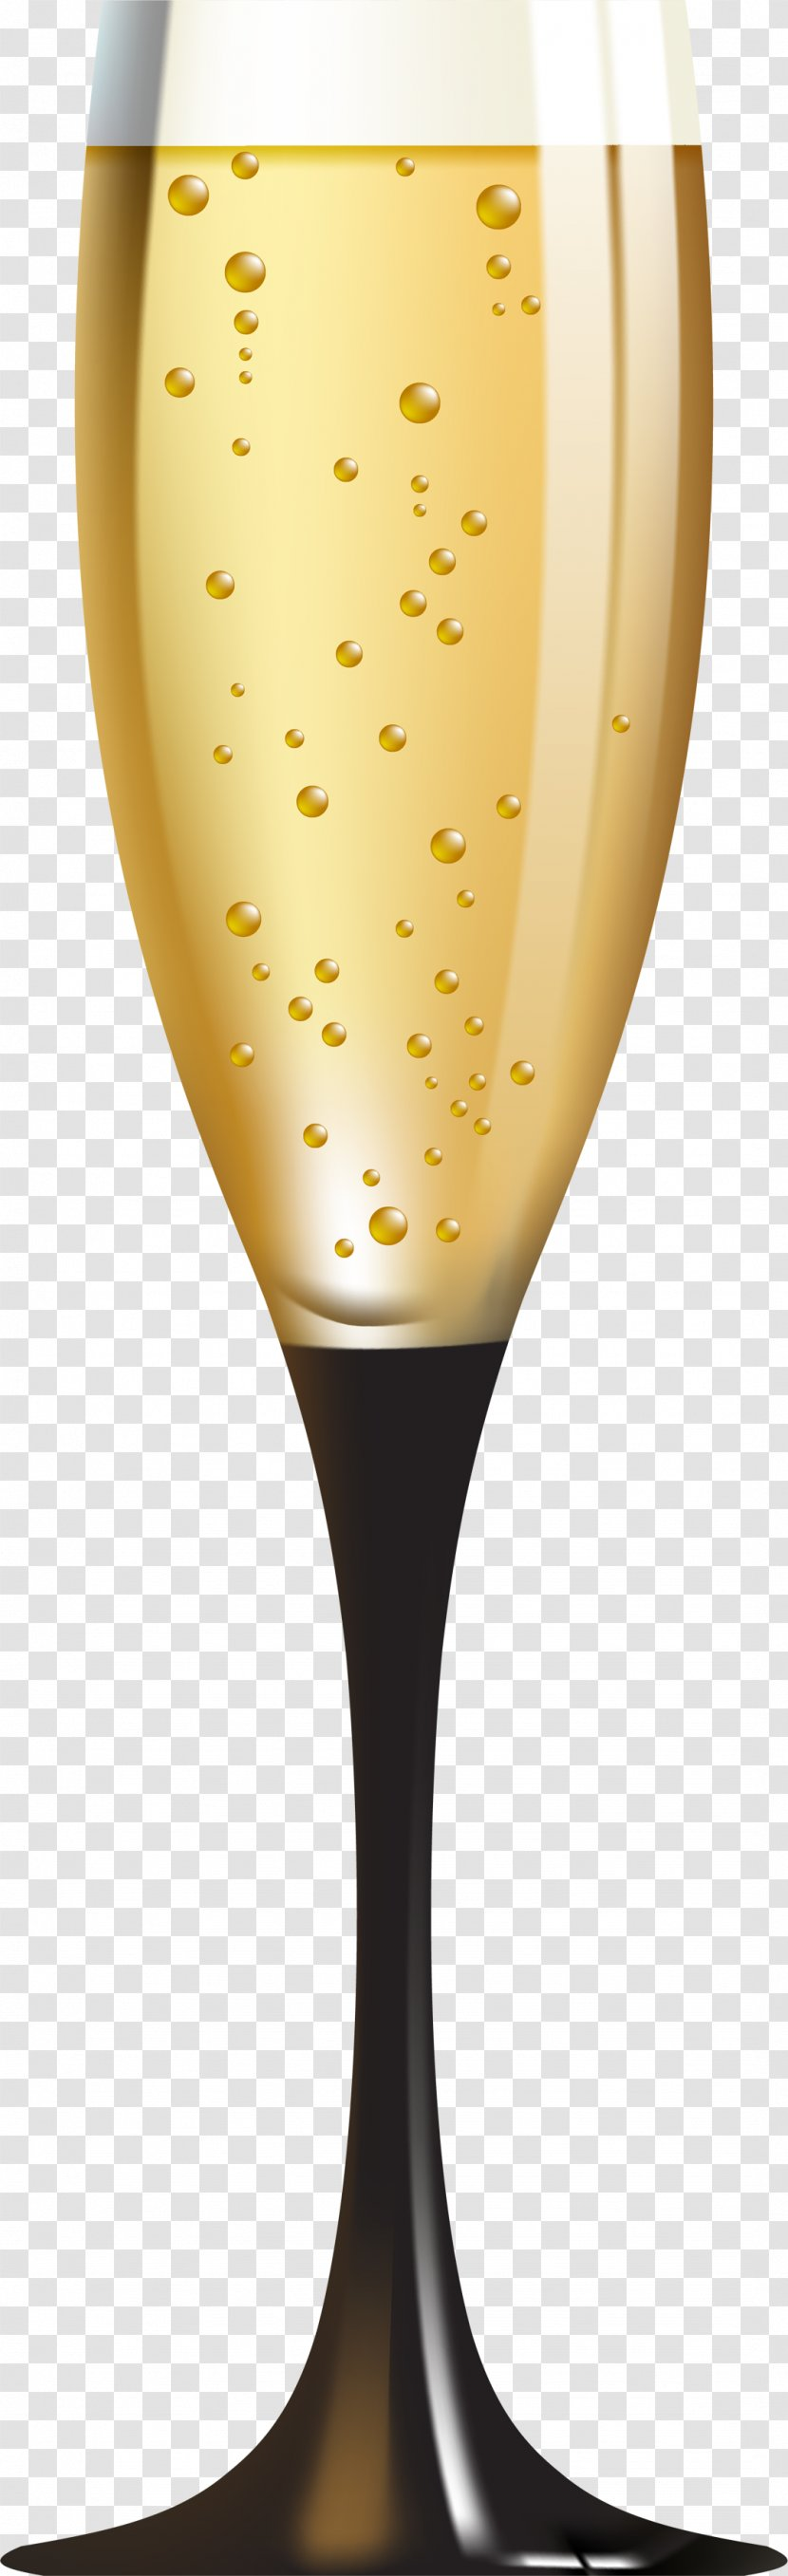 Champagne Glass White Wine Red Transparent PNG